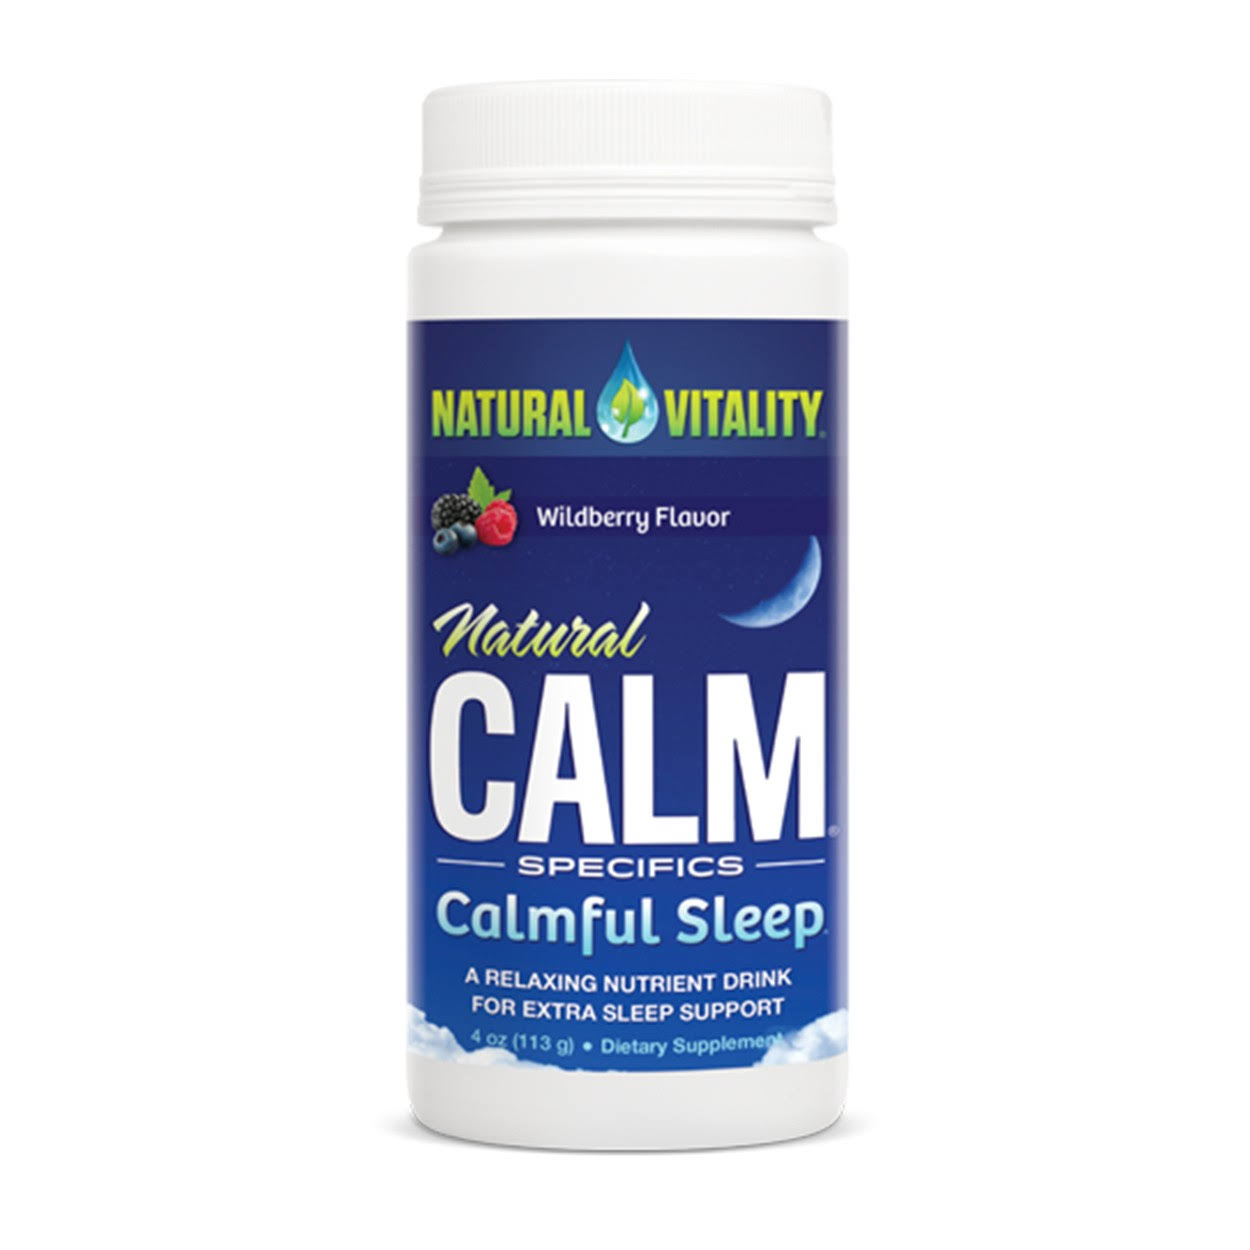 Natural Vitality Natural Calm Calmful Sleep - Wildberry Flavor, 4oz